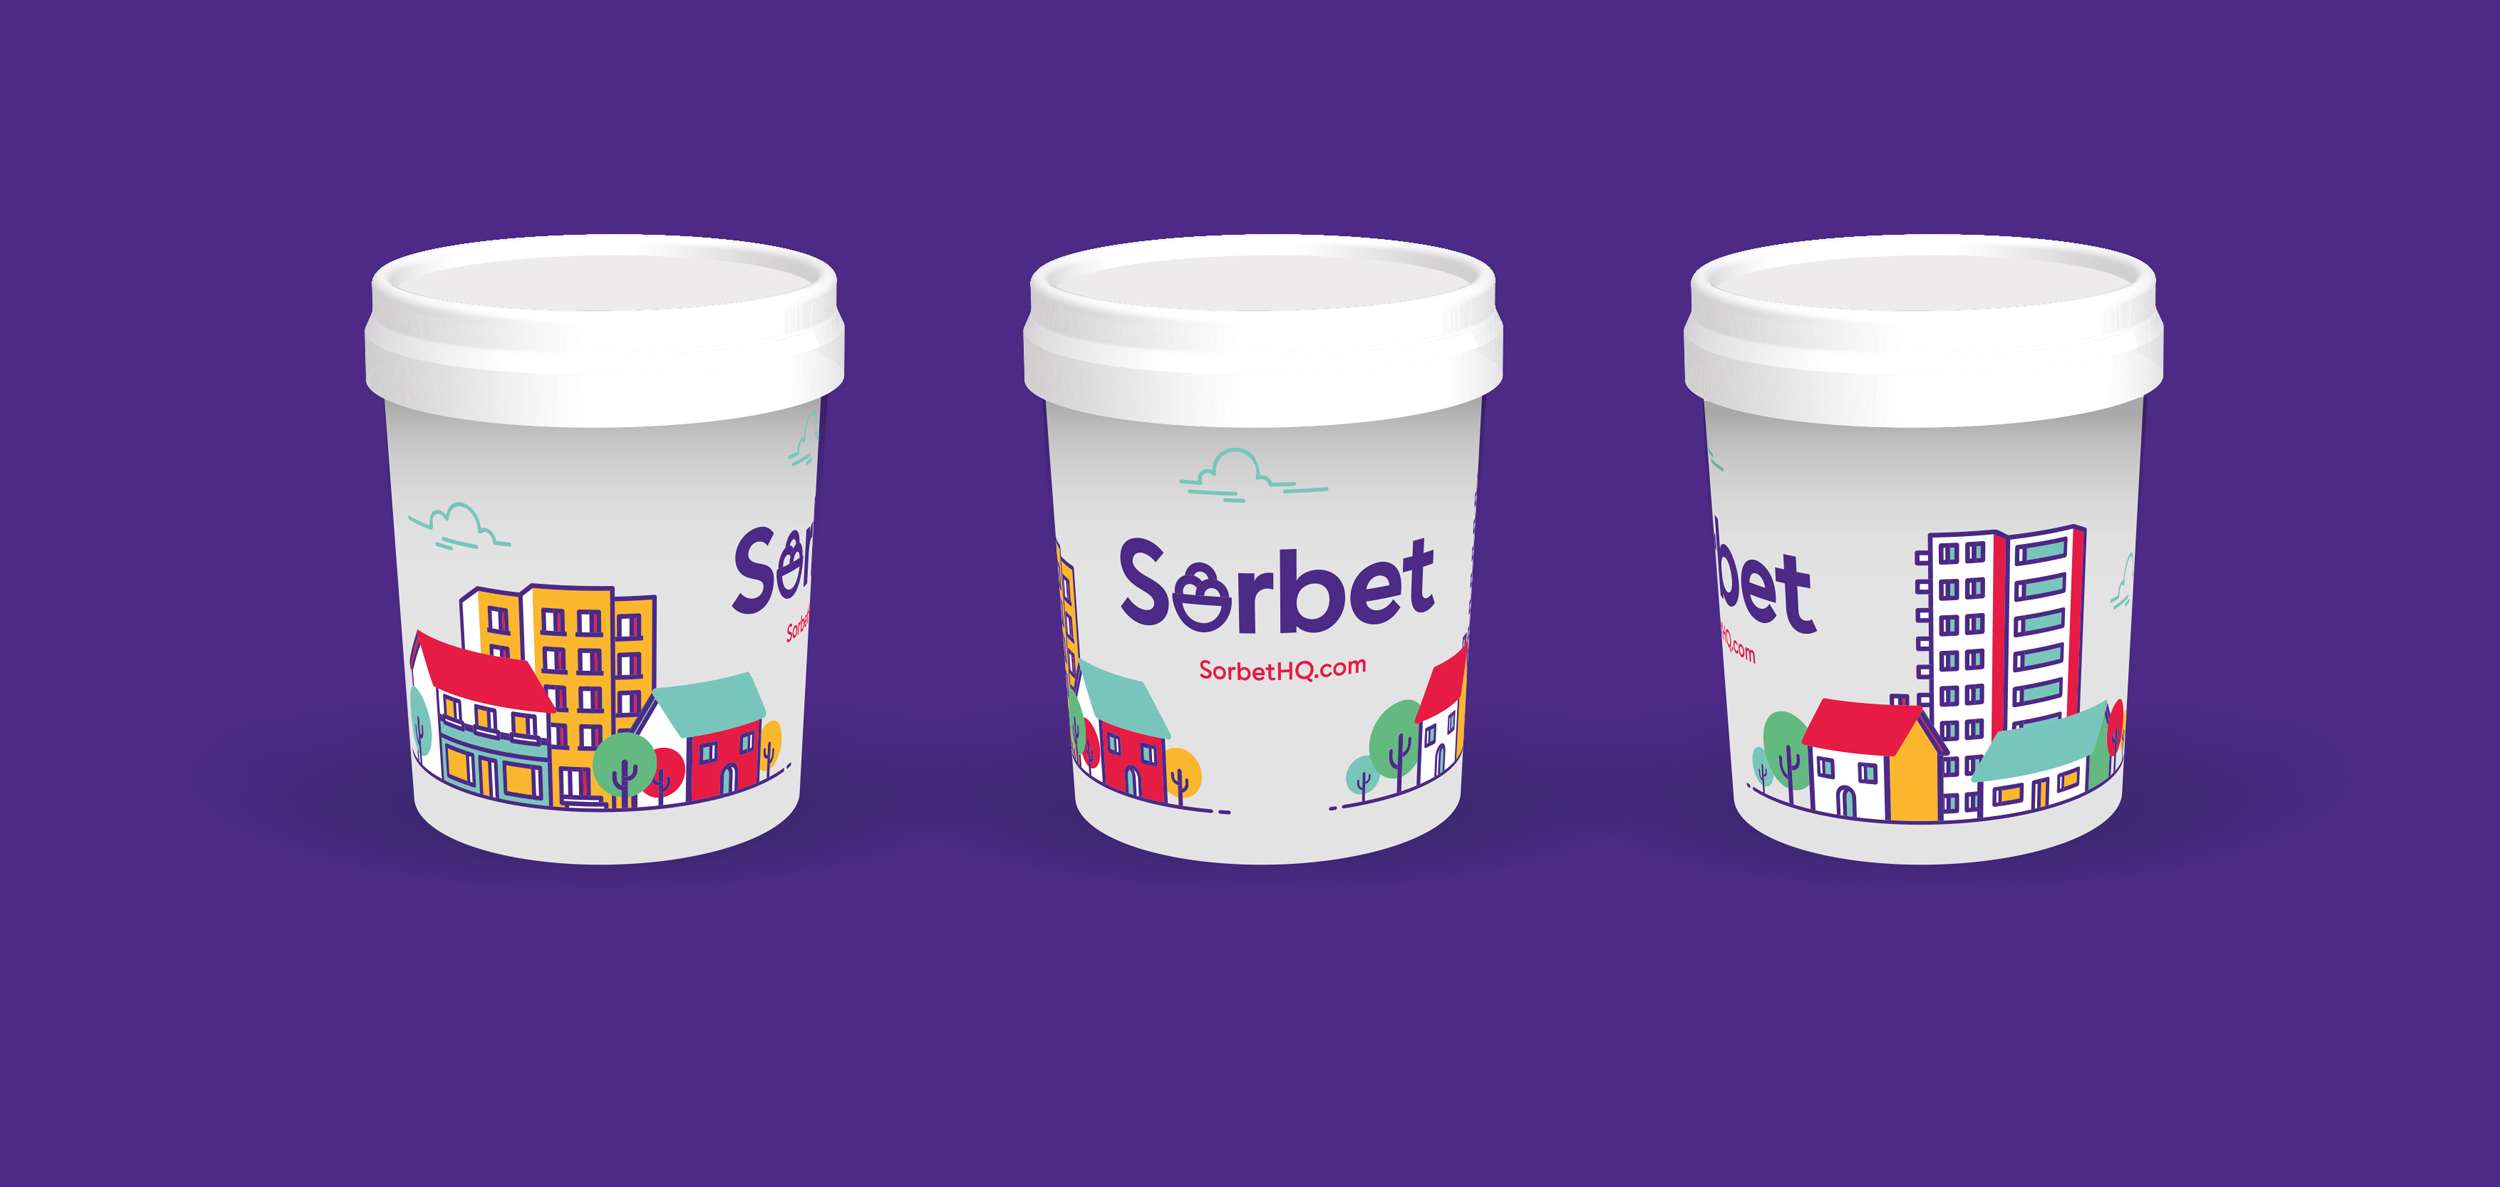 Mockup of promotional tubs of sorbet to launch the new brand